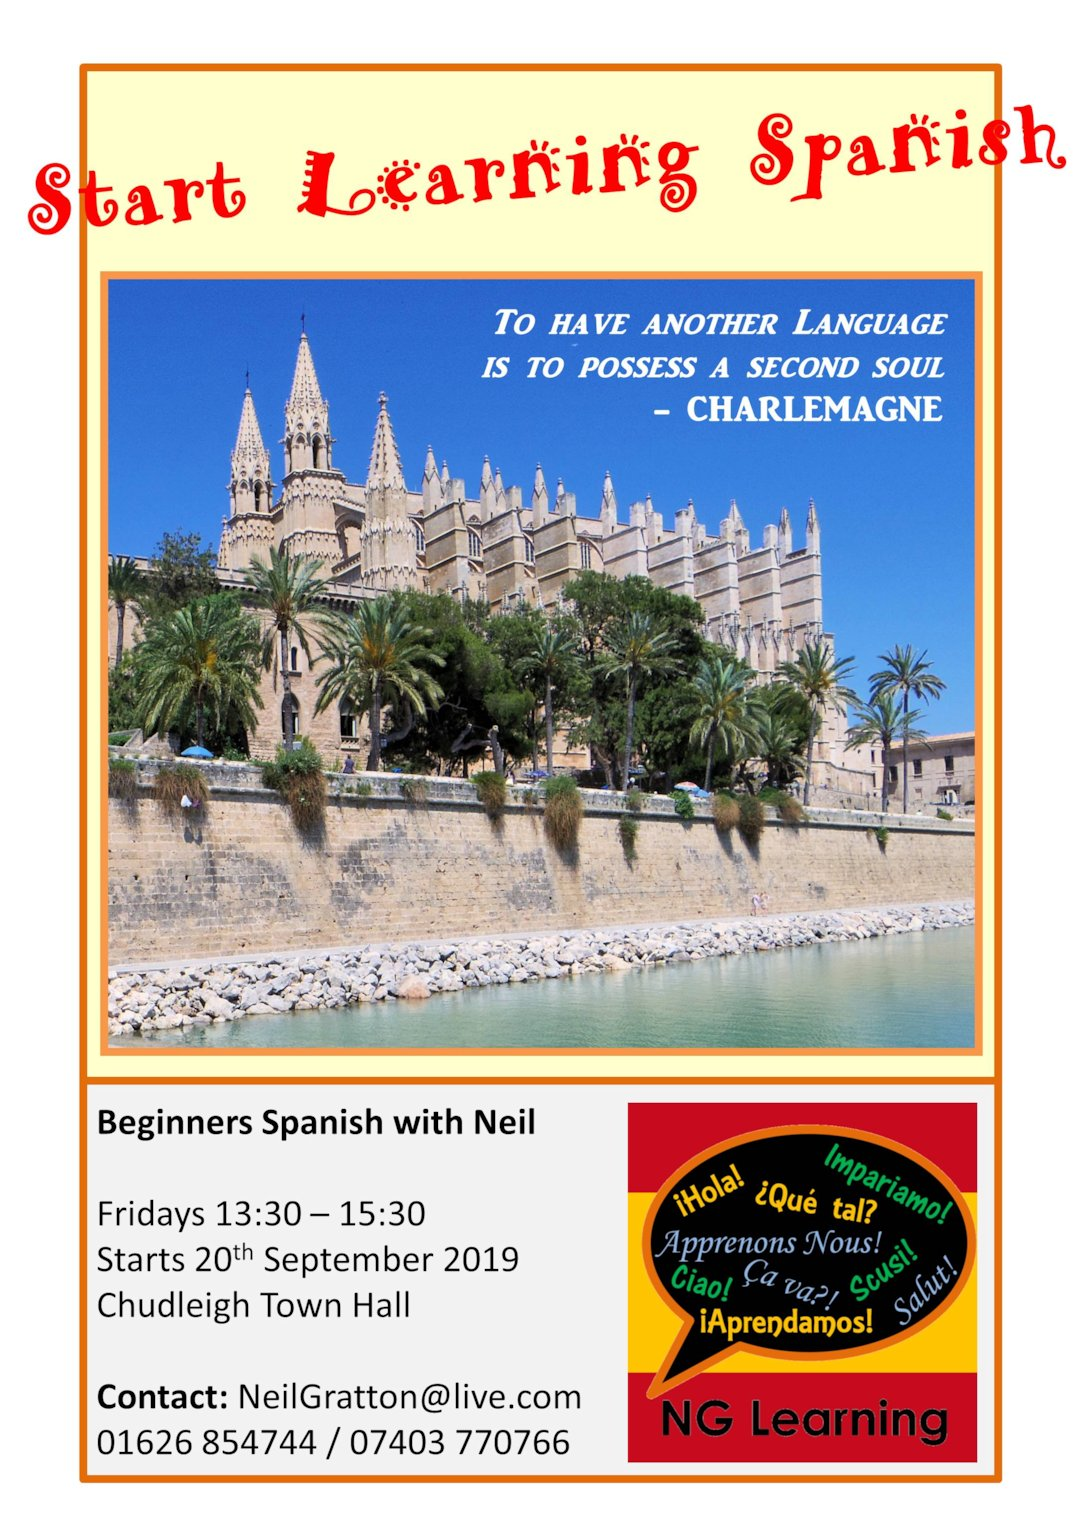 Poster Friday Afternoon Spanish Chudleigh